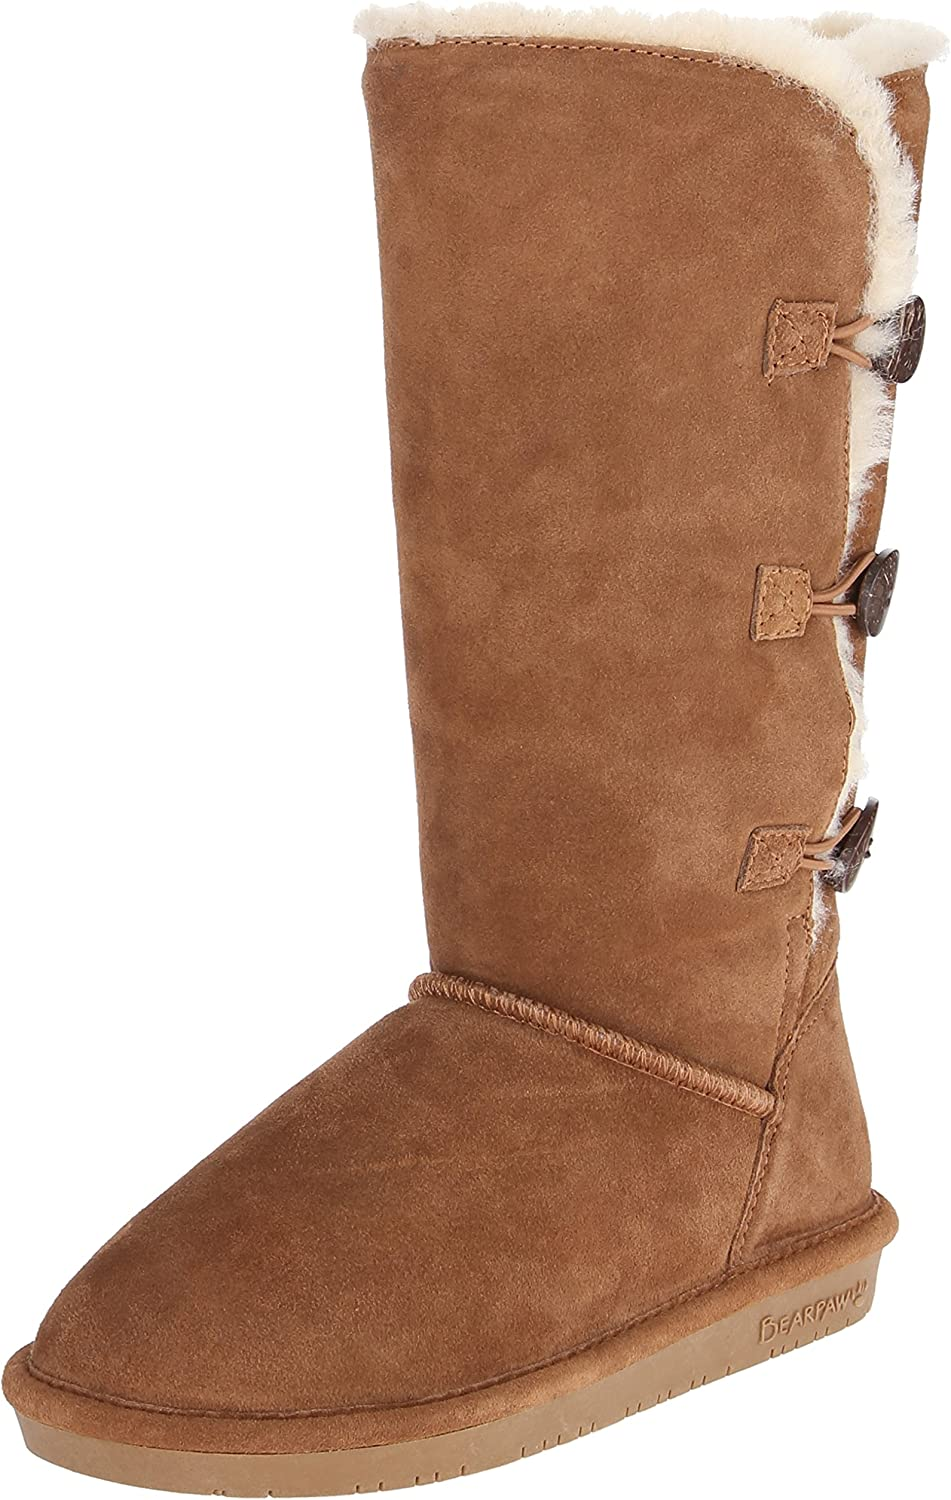 Bearpaw Women's Lauren Winter Boot, Hickory, 6 M US